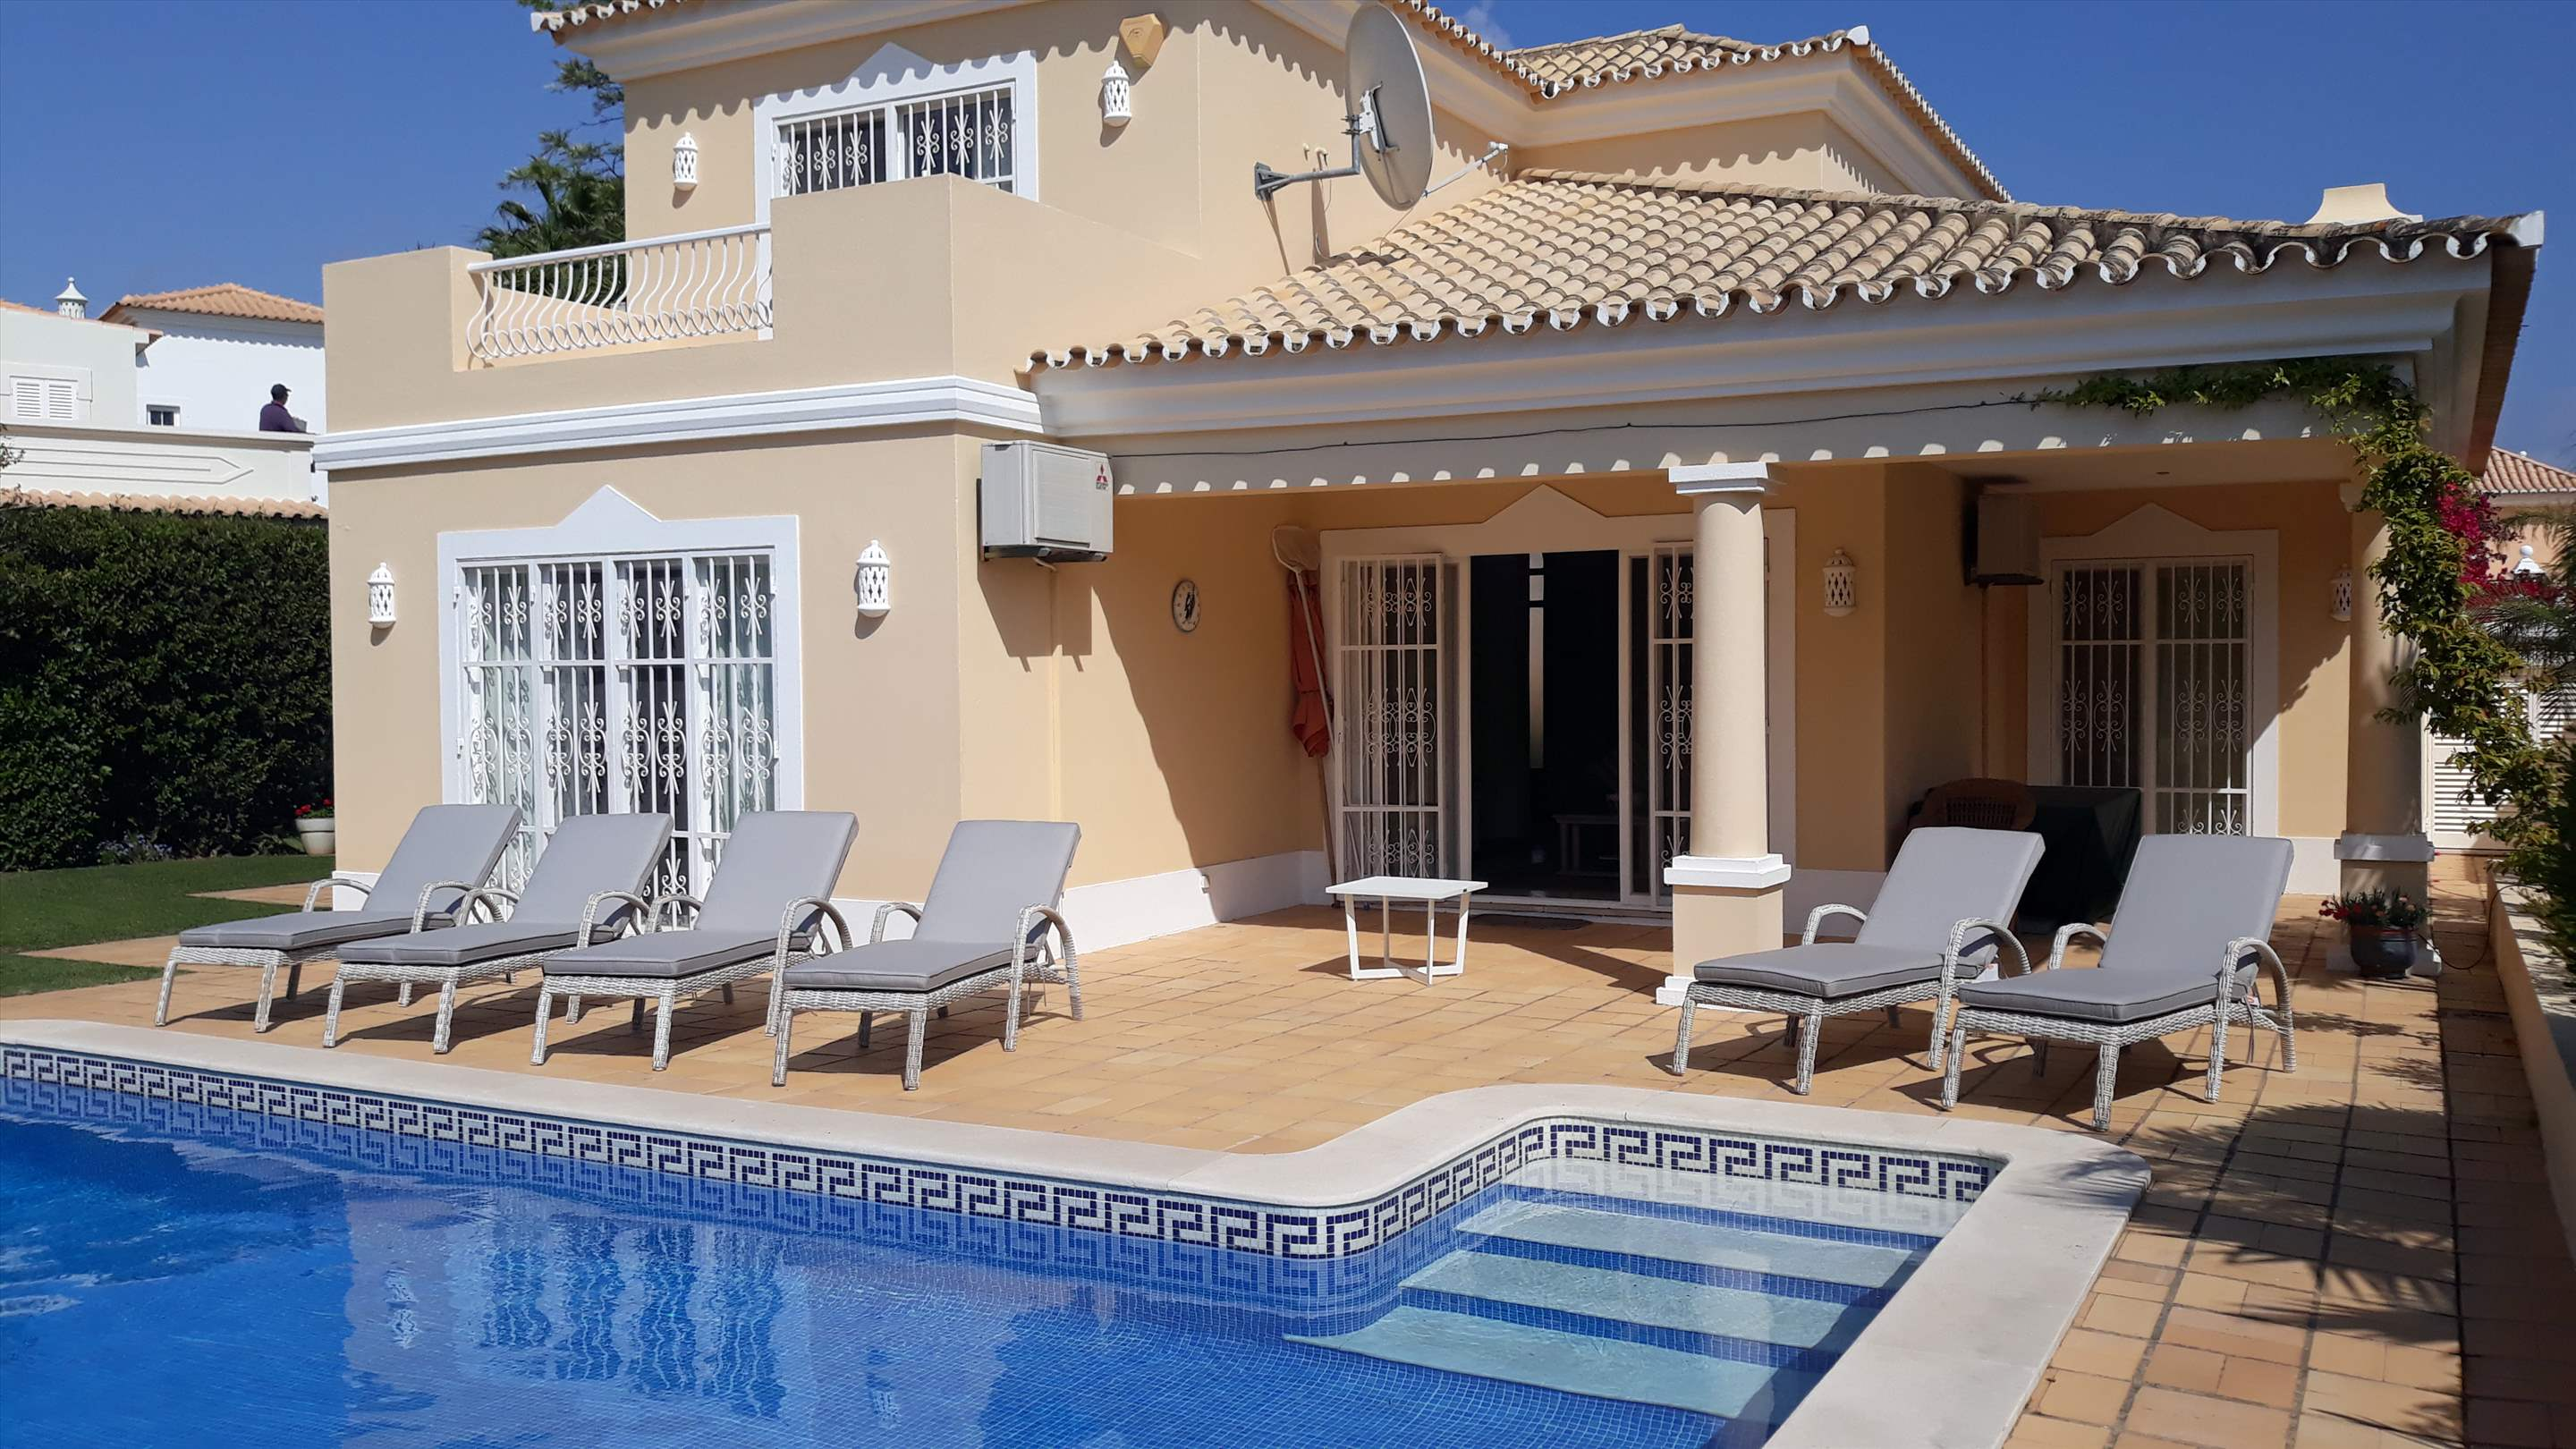 Casa Rosada, 3 bedroom villa in Vale do Lobo, Algarve